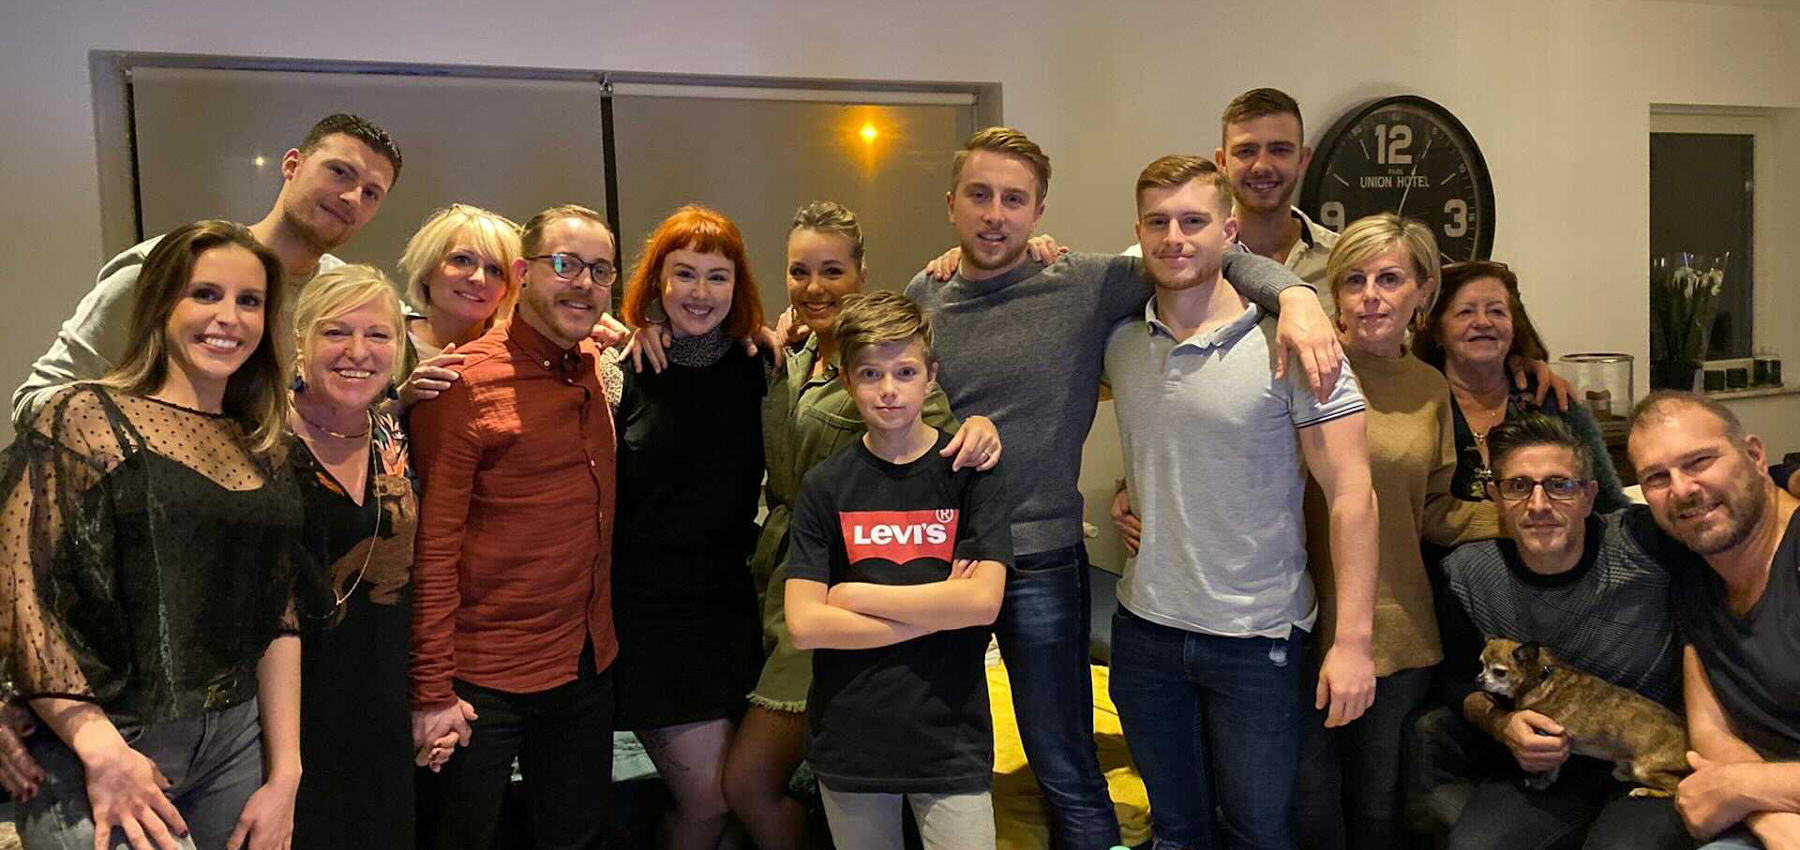 Quentin, with friends and family in Belgium